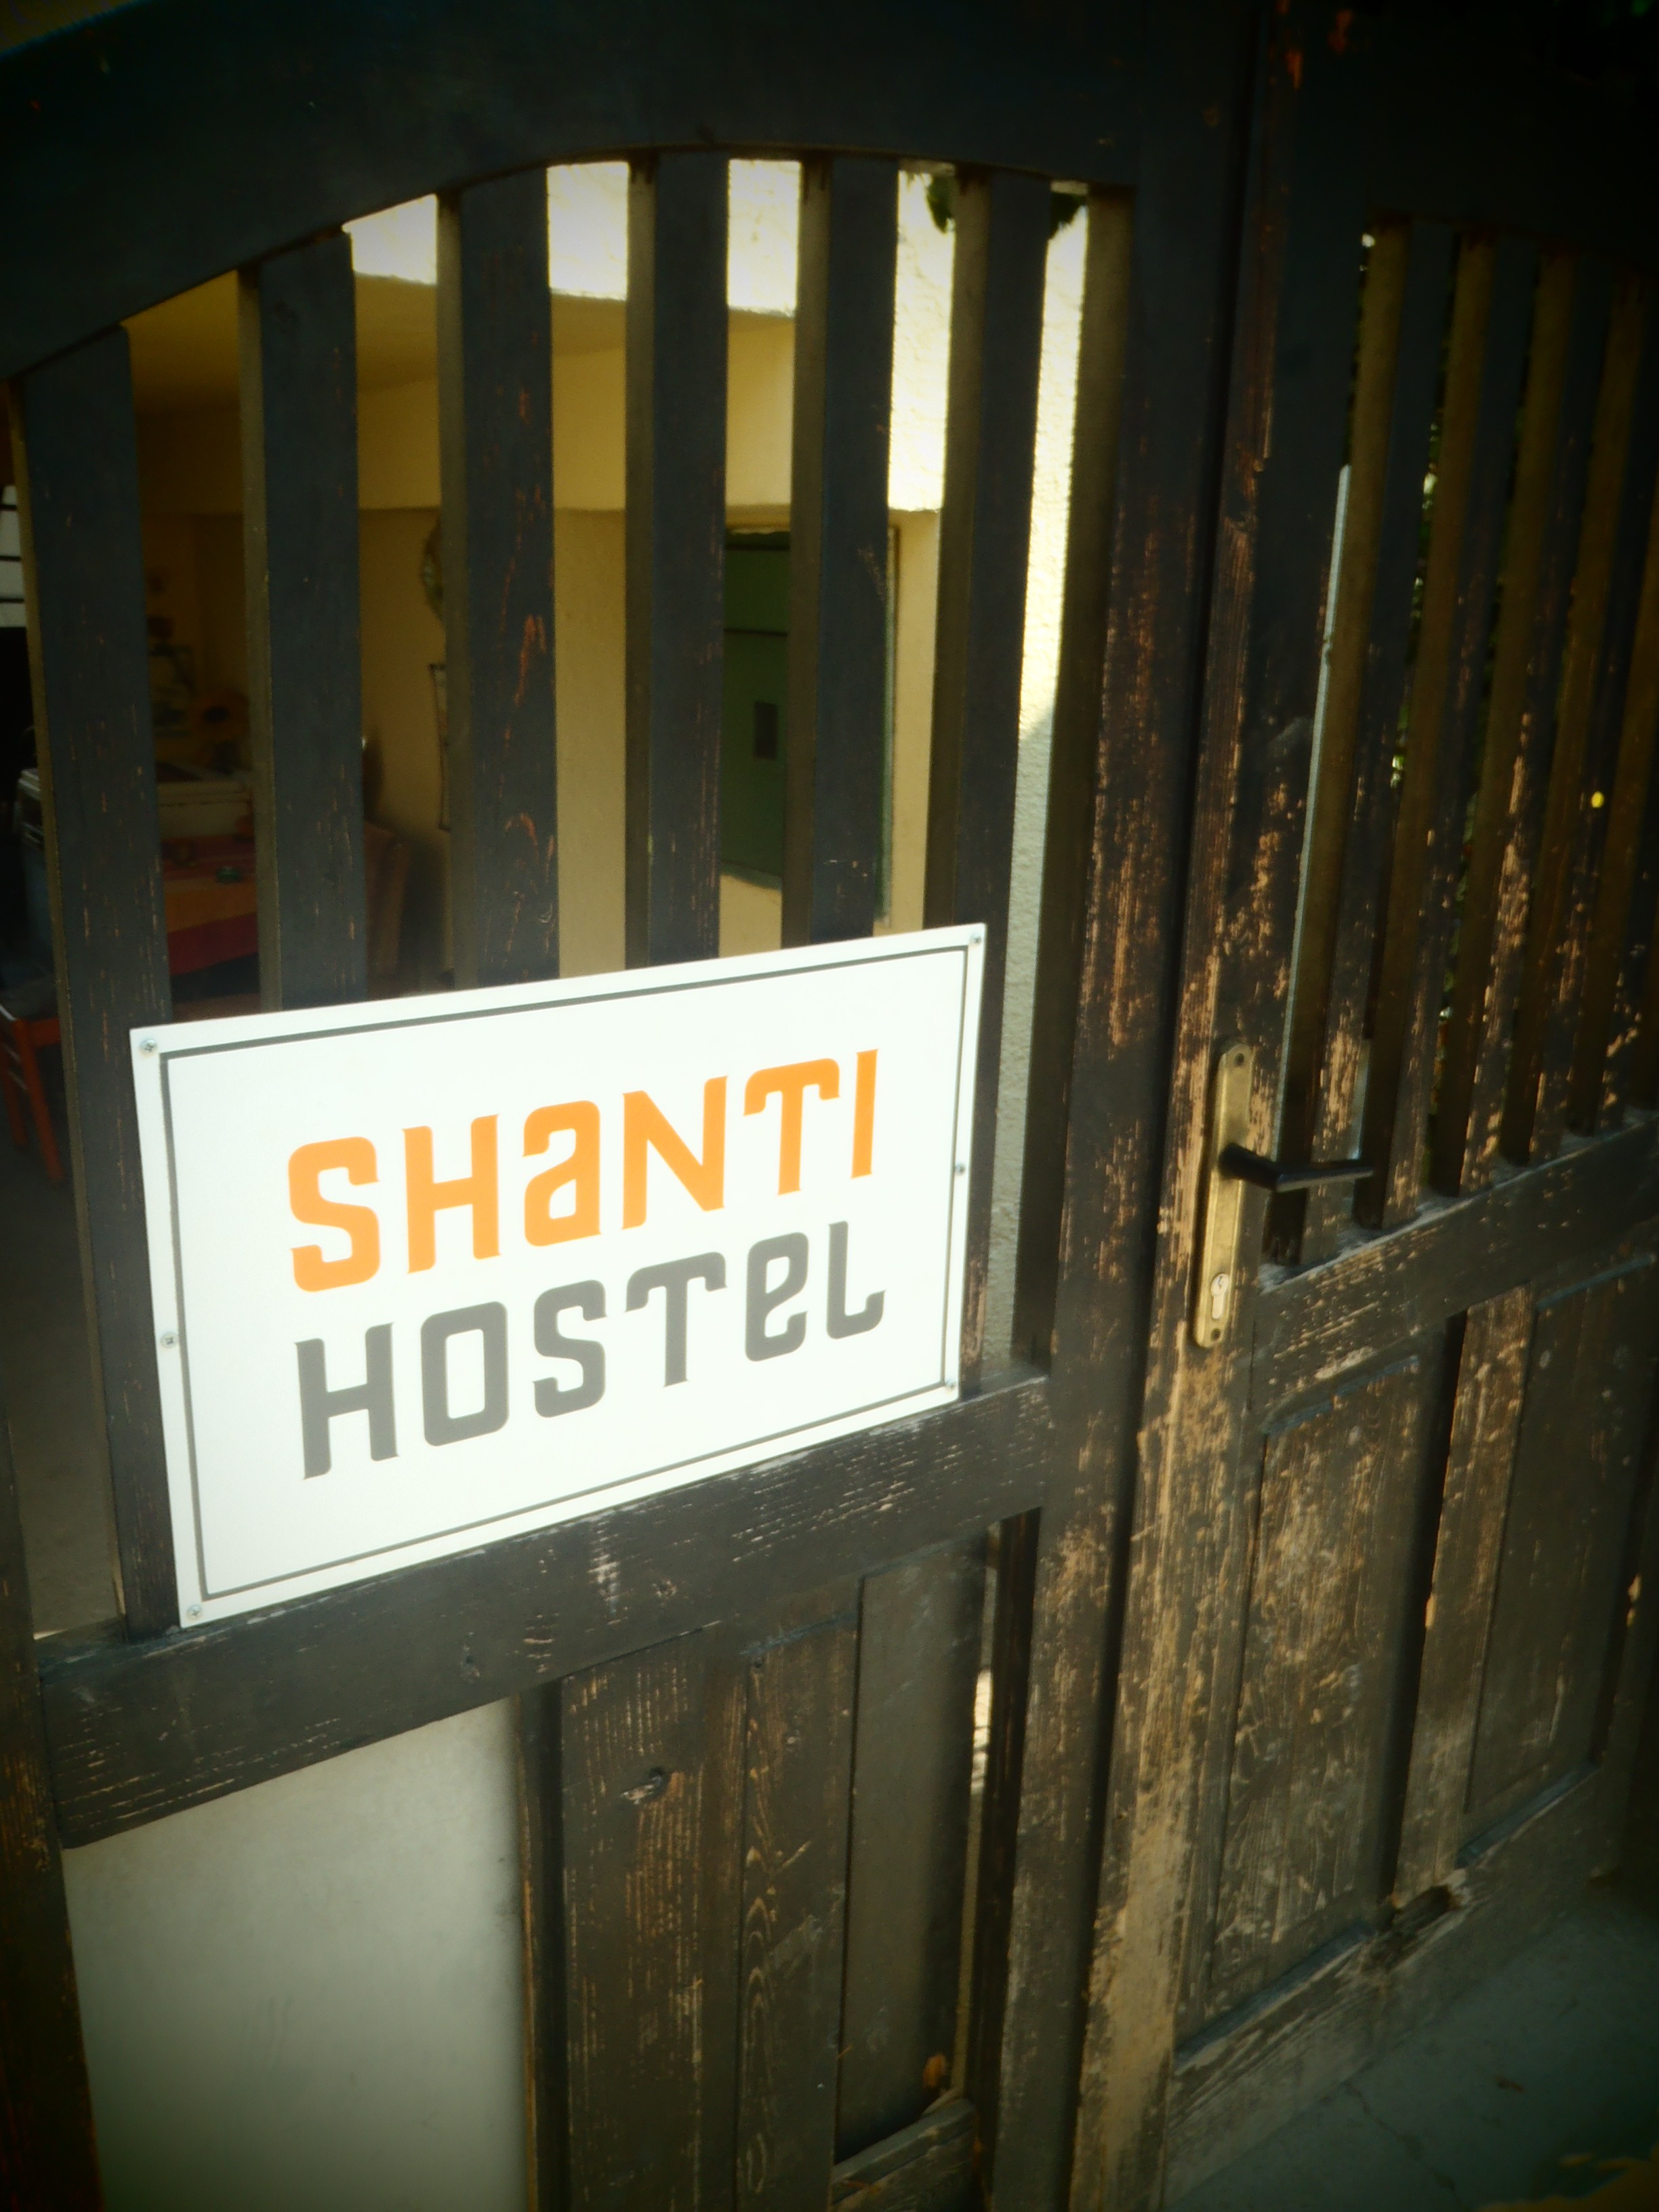 Shanti Hostel Entrance; Skopje, Republic of Macedonia; 2013